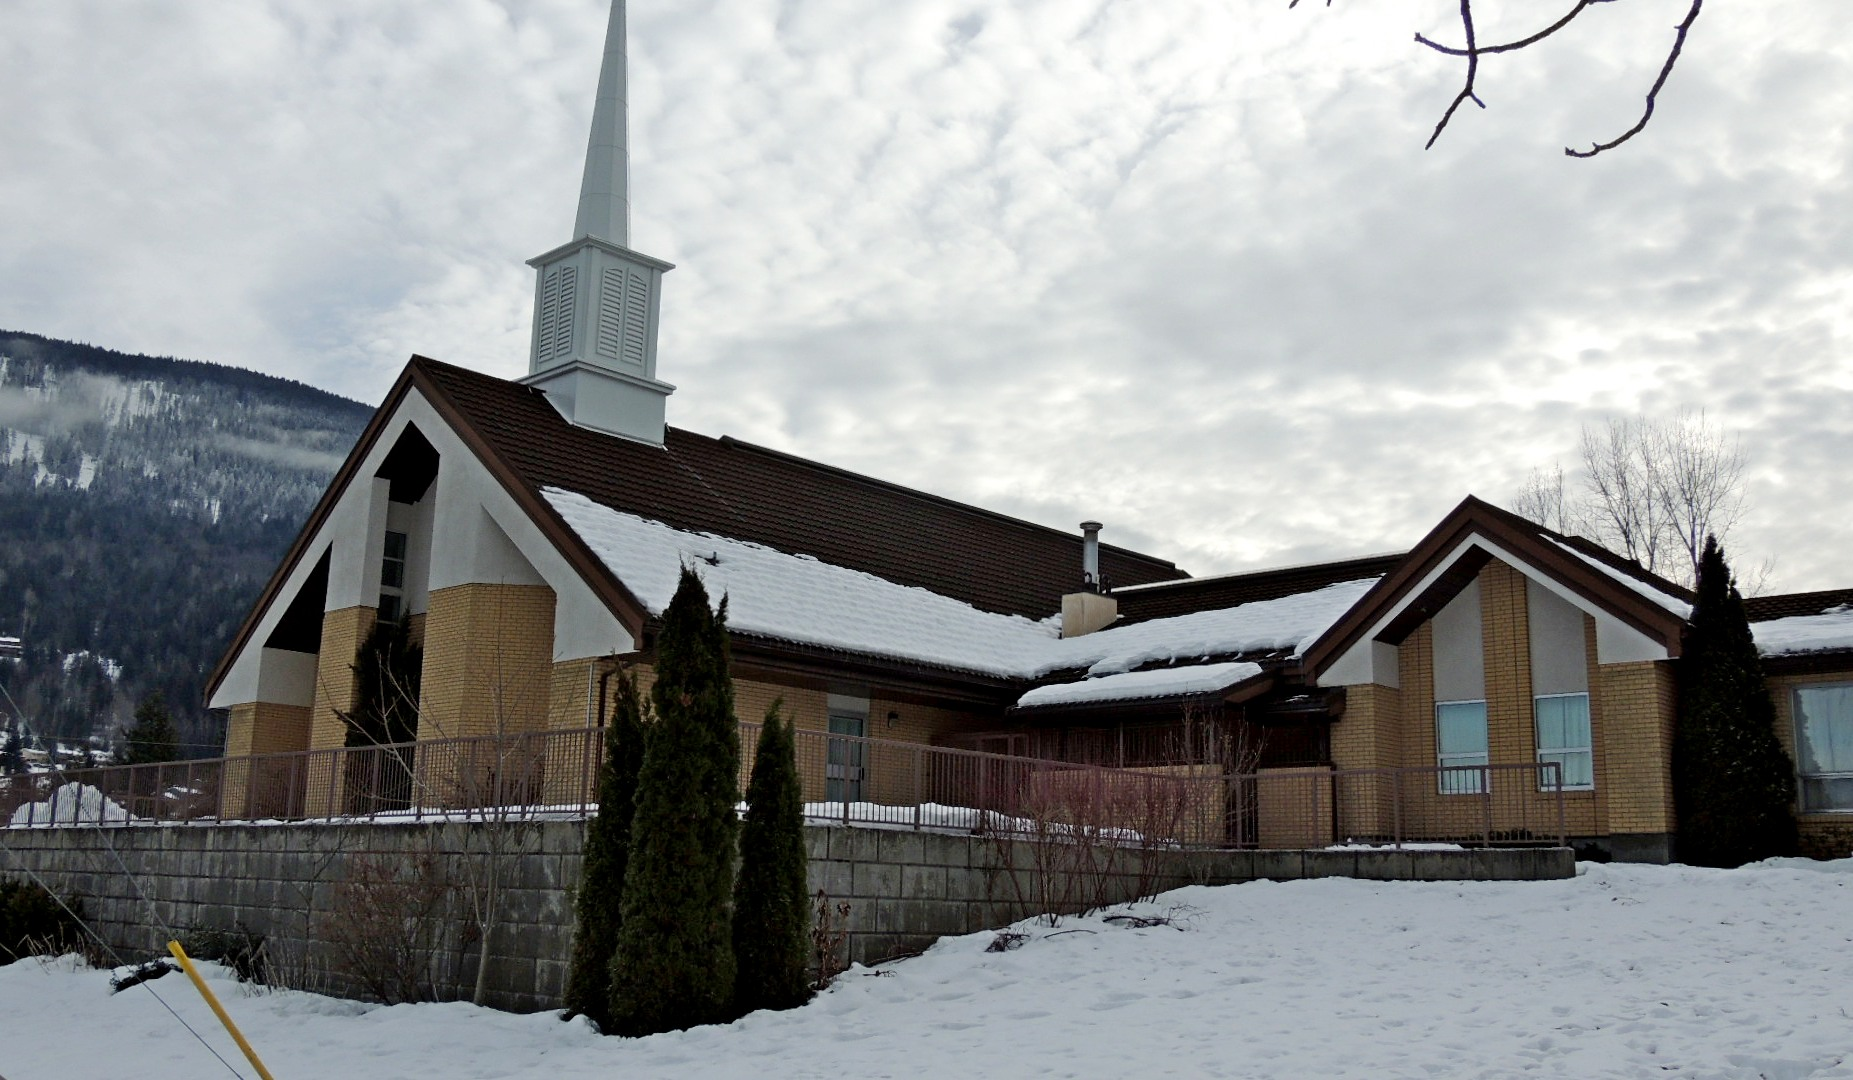 Church of Jesus Christ of Latter Day Saints Nelson, BC Photo